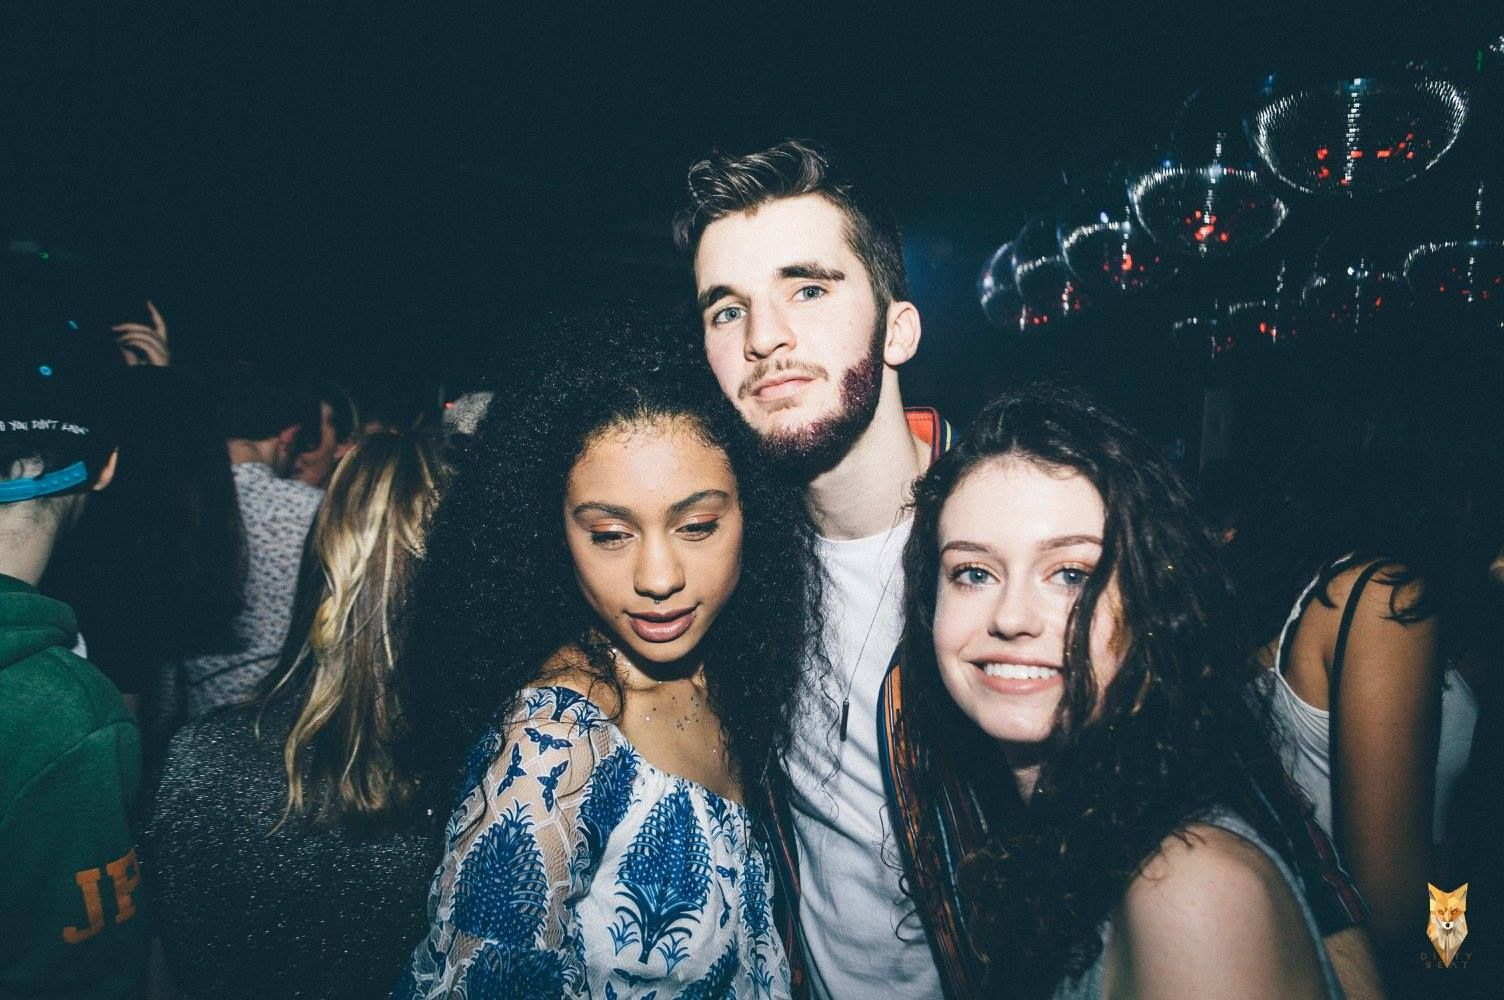 Image may contain: Smile, Portrait, Face, Crowd, Night Life, Night Club, Club, Person, People, Human